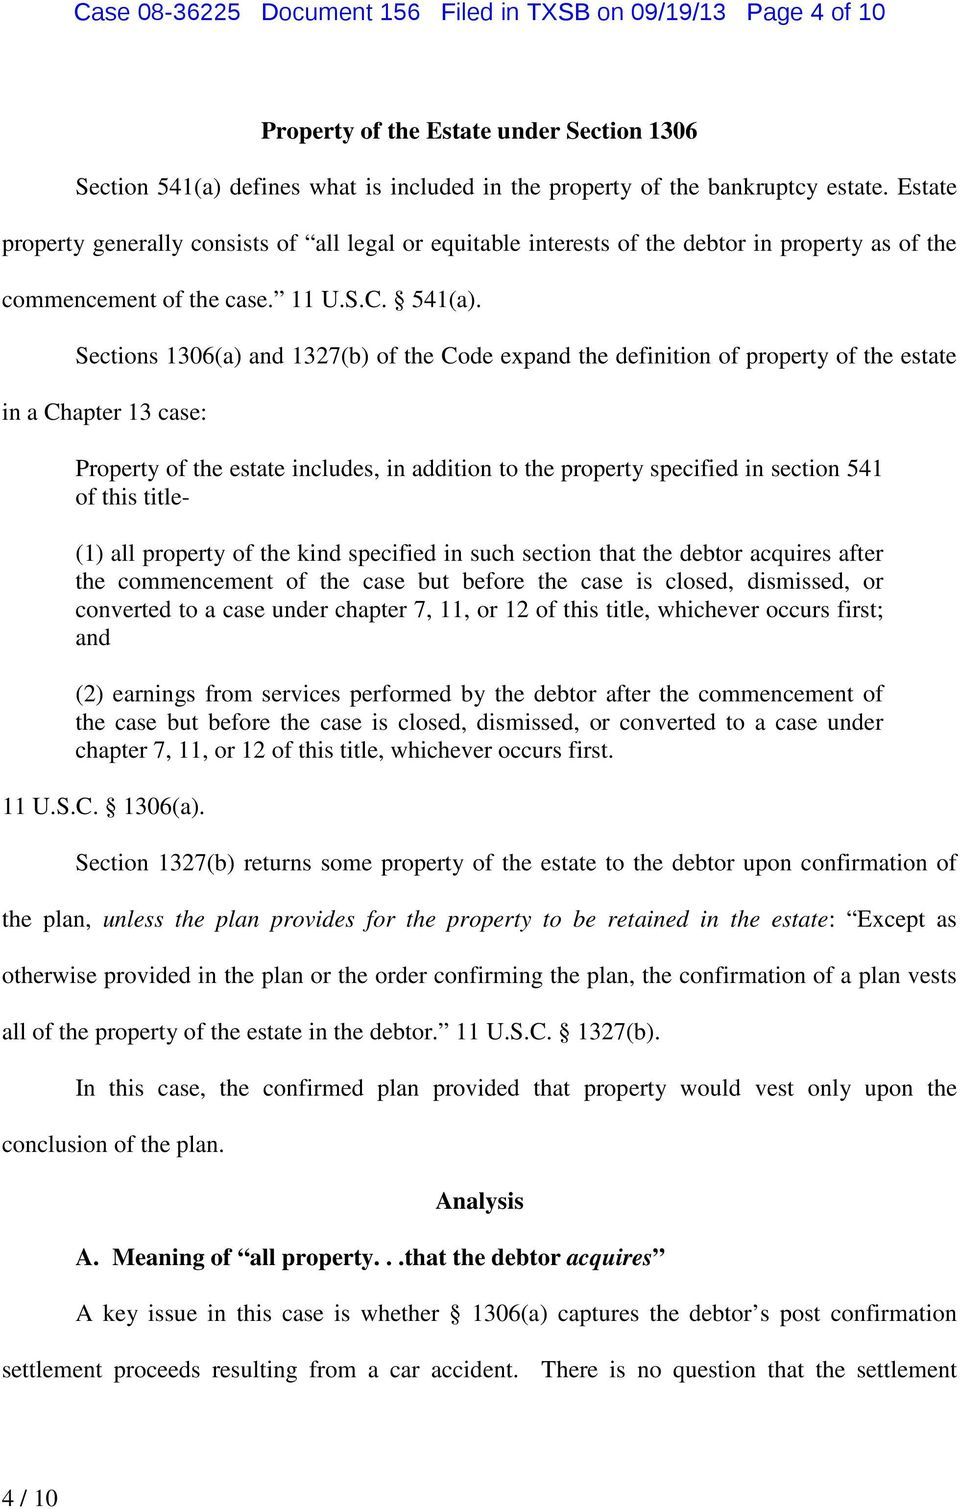 Sections 1306(a) and 1327(b) of the Code expand the definition of property of the estate in a Chapter 13 case: Property of the estate includes, in addition to the property specified in section 541 of